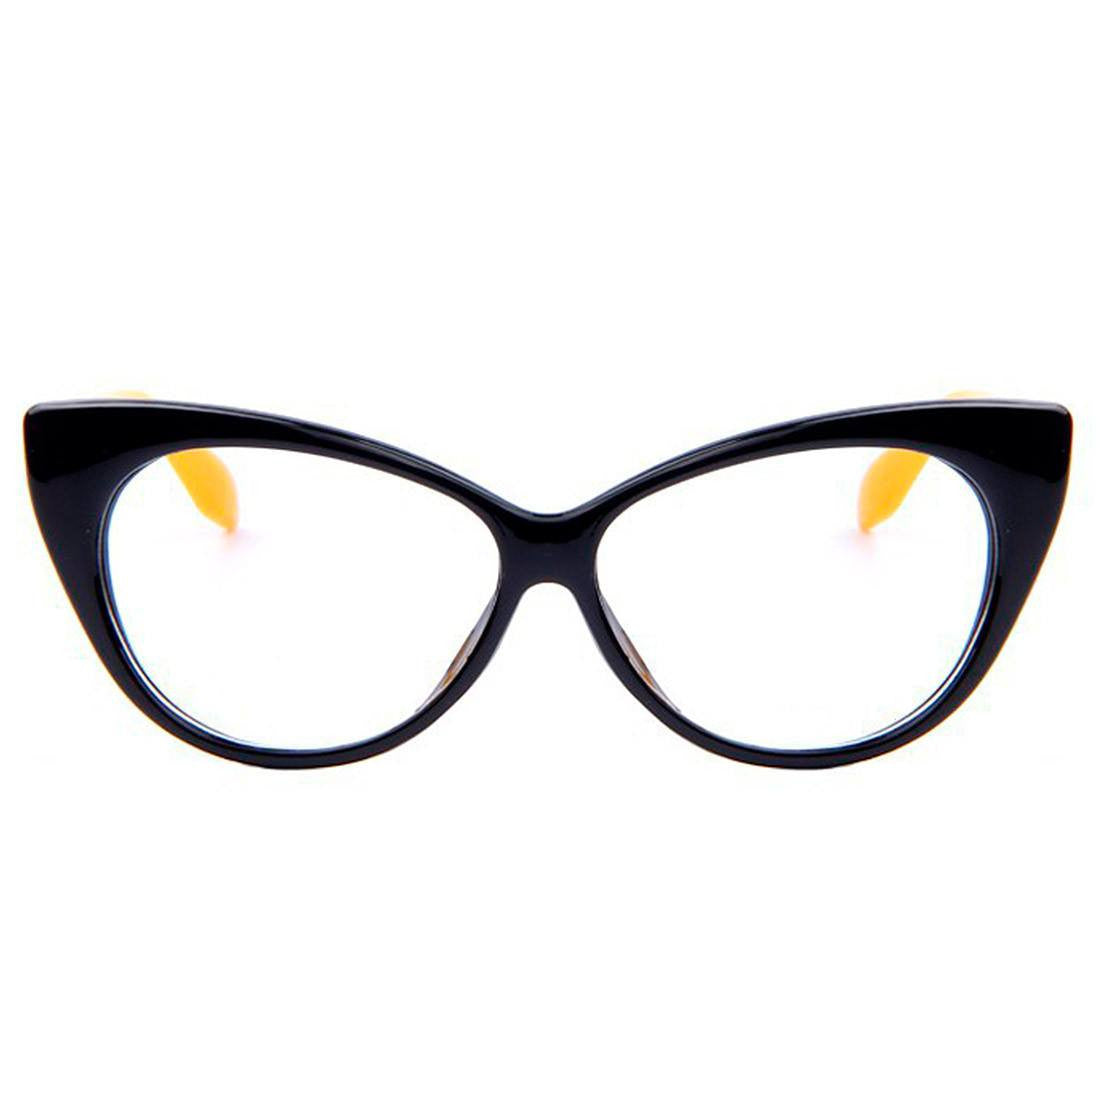 Clear Glasses - Candy - Black & Yellow